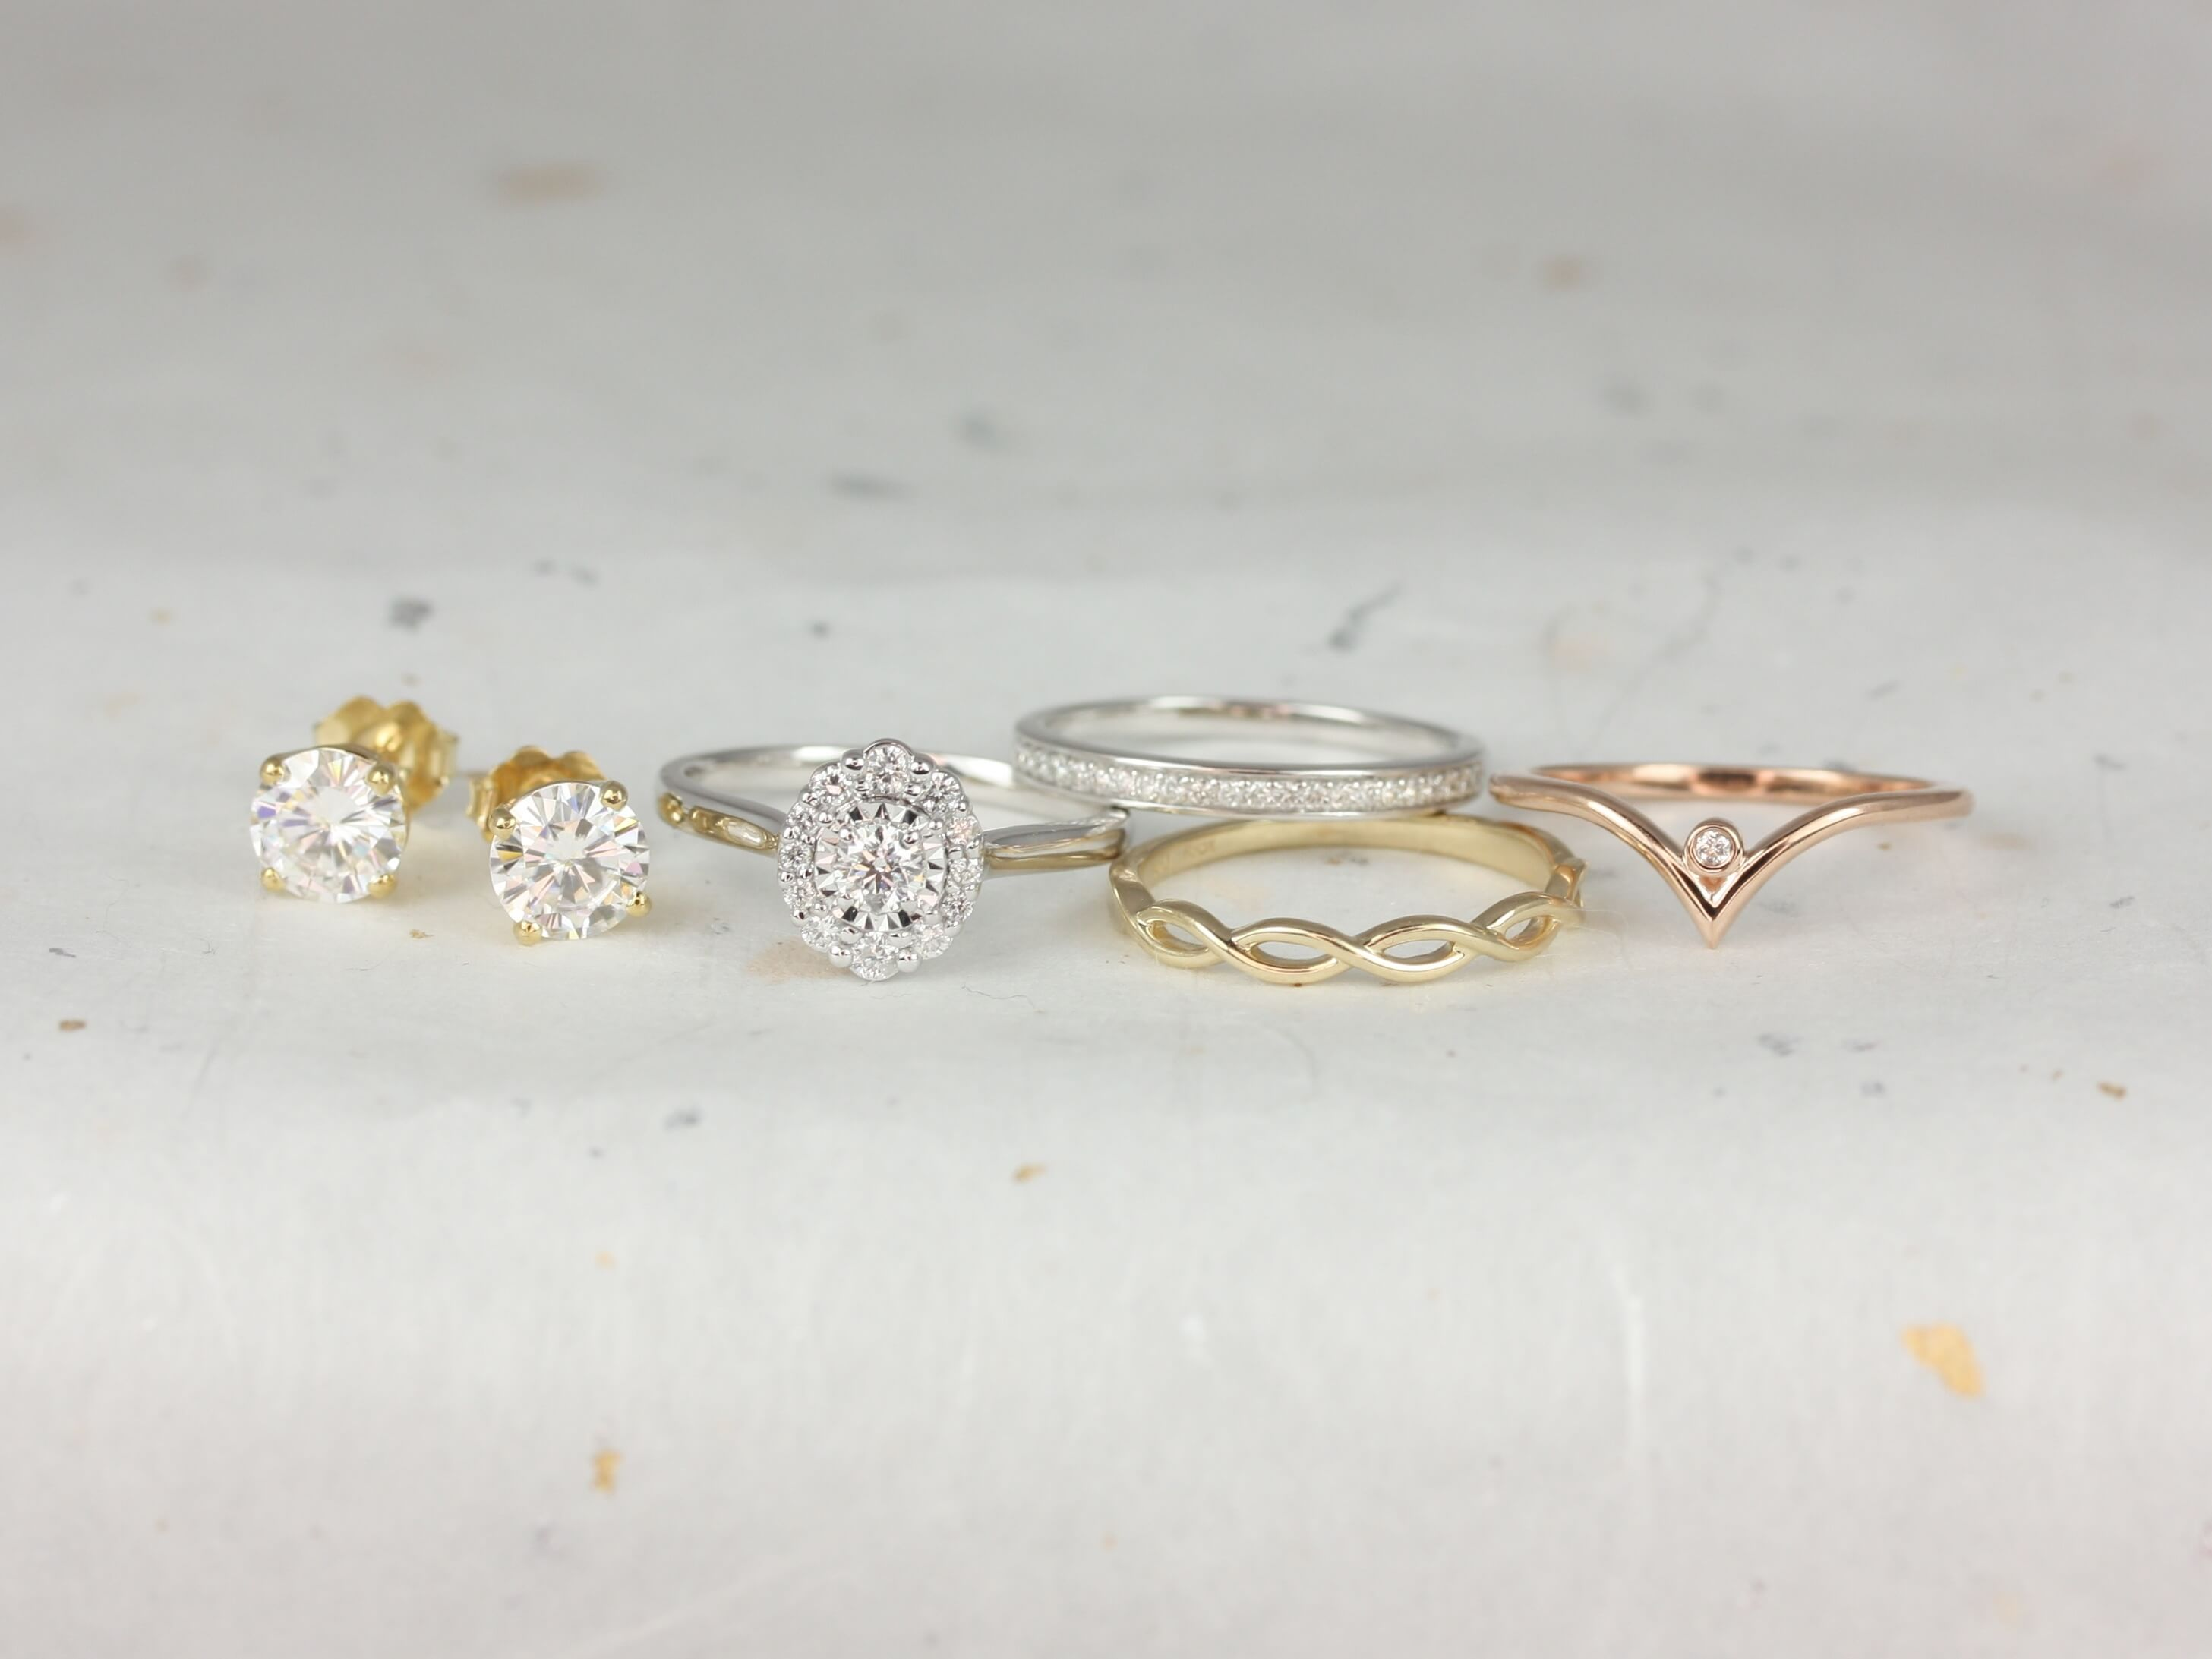 Collection of differently shaped and colored rings and earrings.